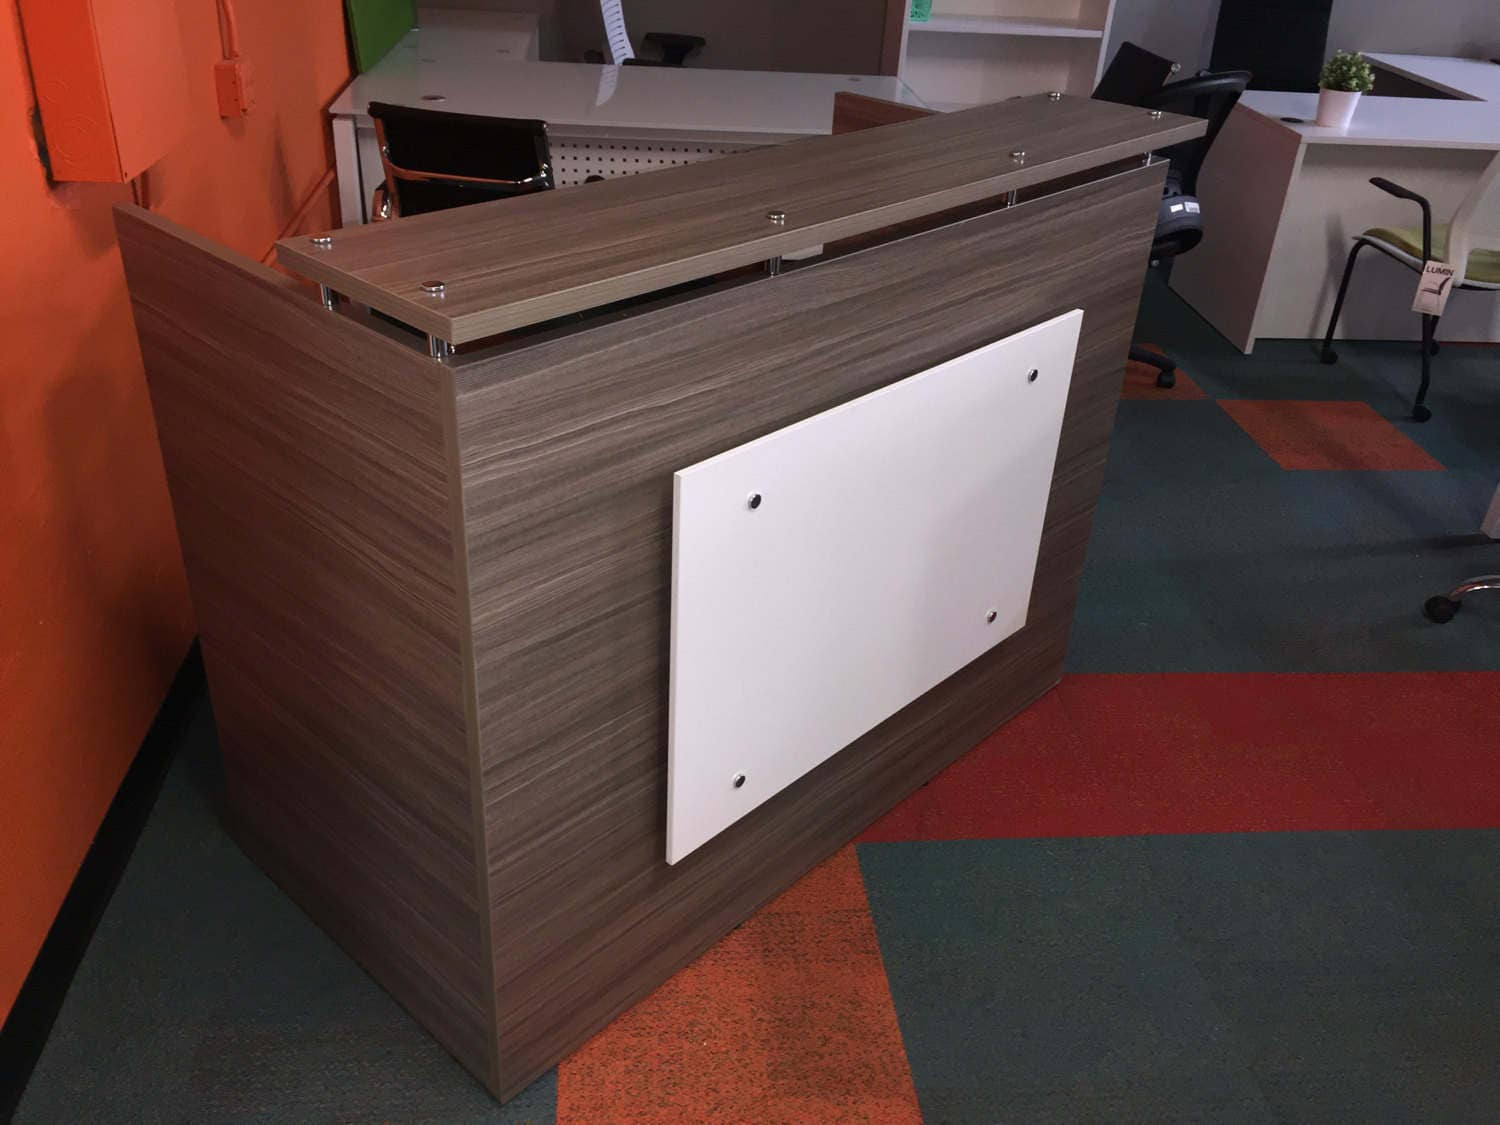 Sand Reception Desk Shell 30 By 60 Inch